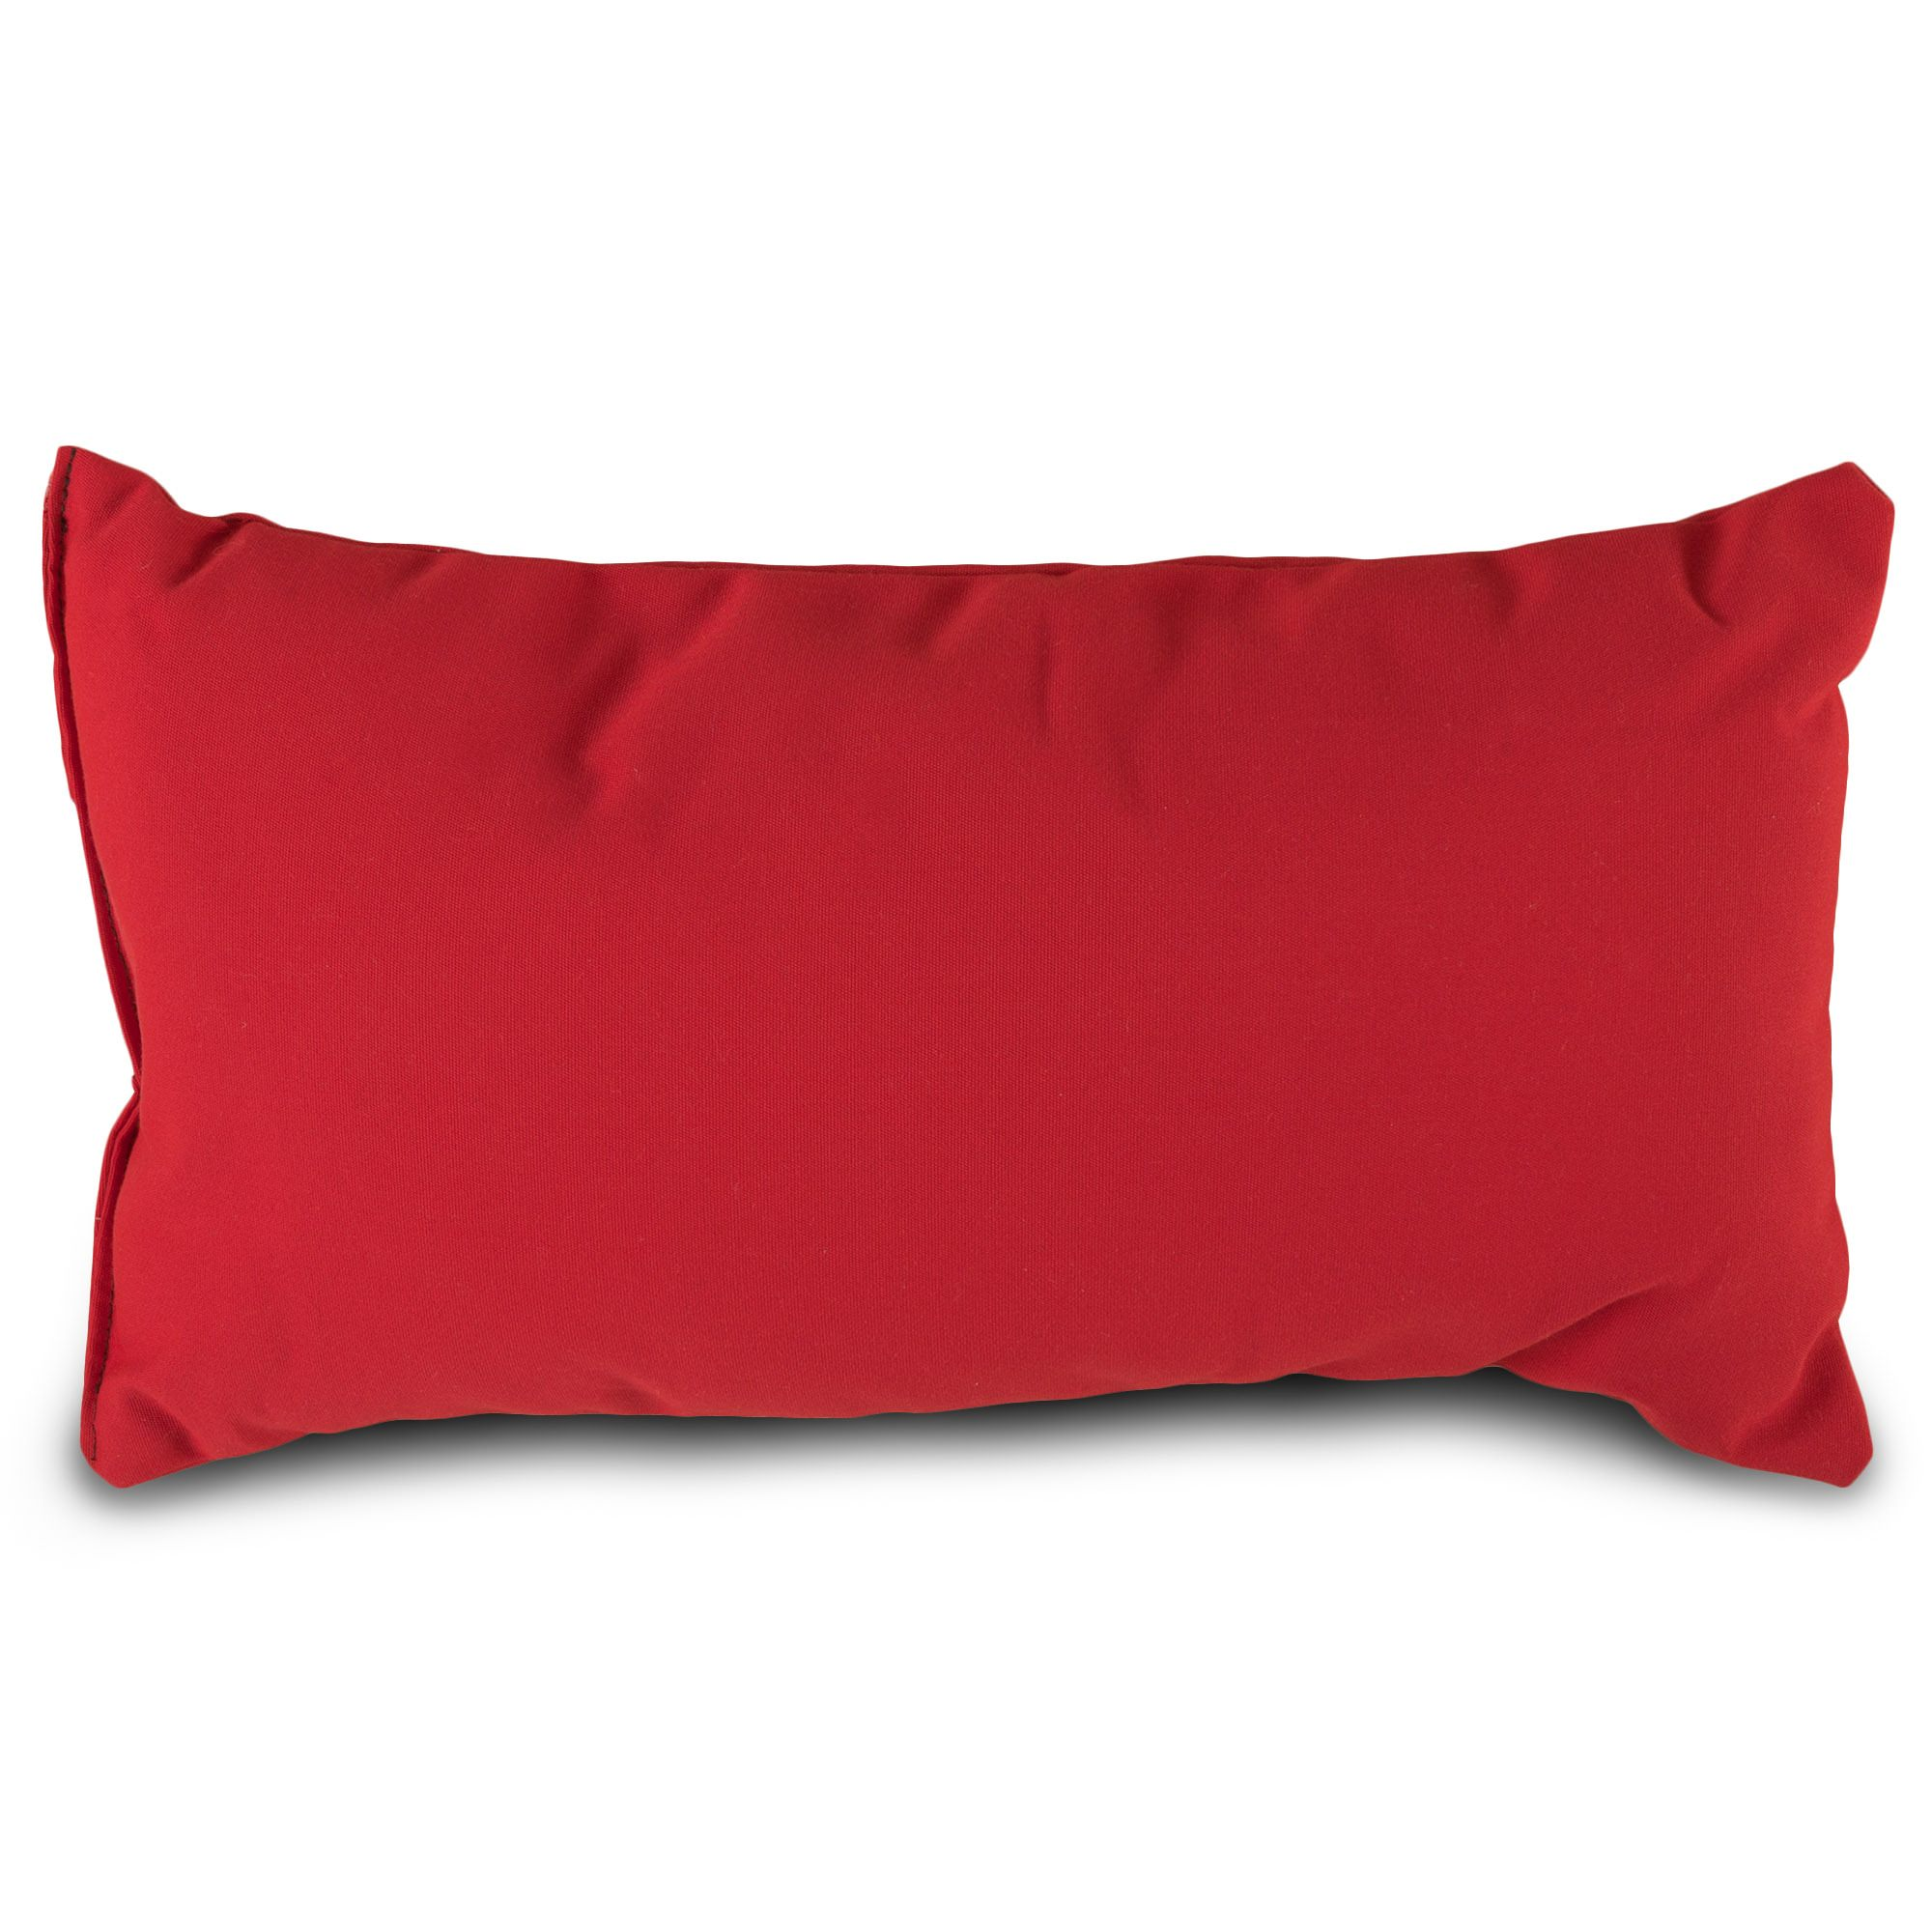 Sunbrella Throw Pillows Clearance : Jockey Red Sunbrella Outdoor Throw Pillow DFOHome